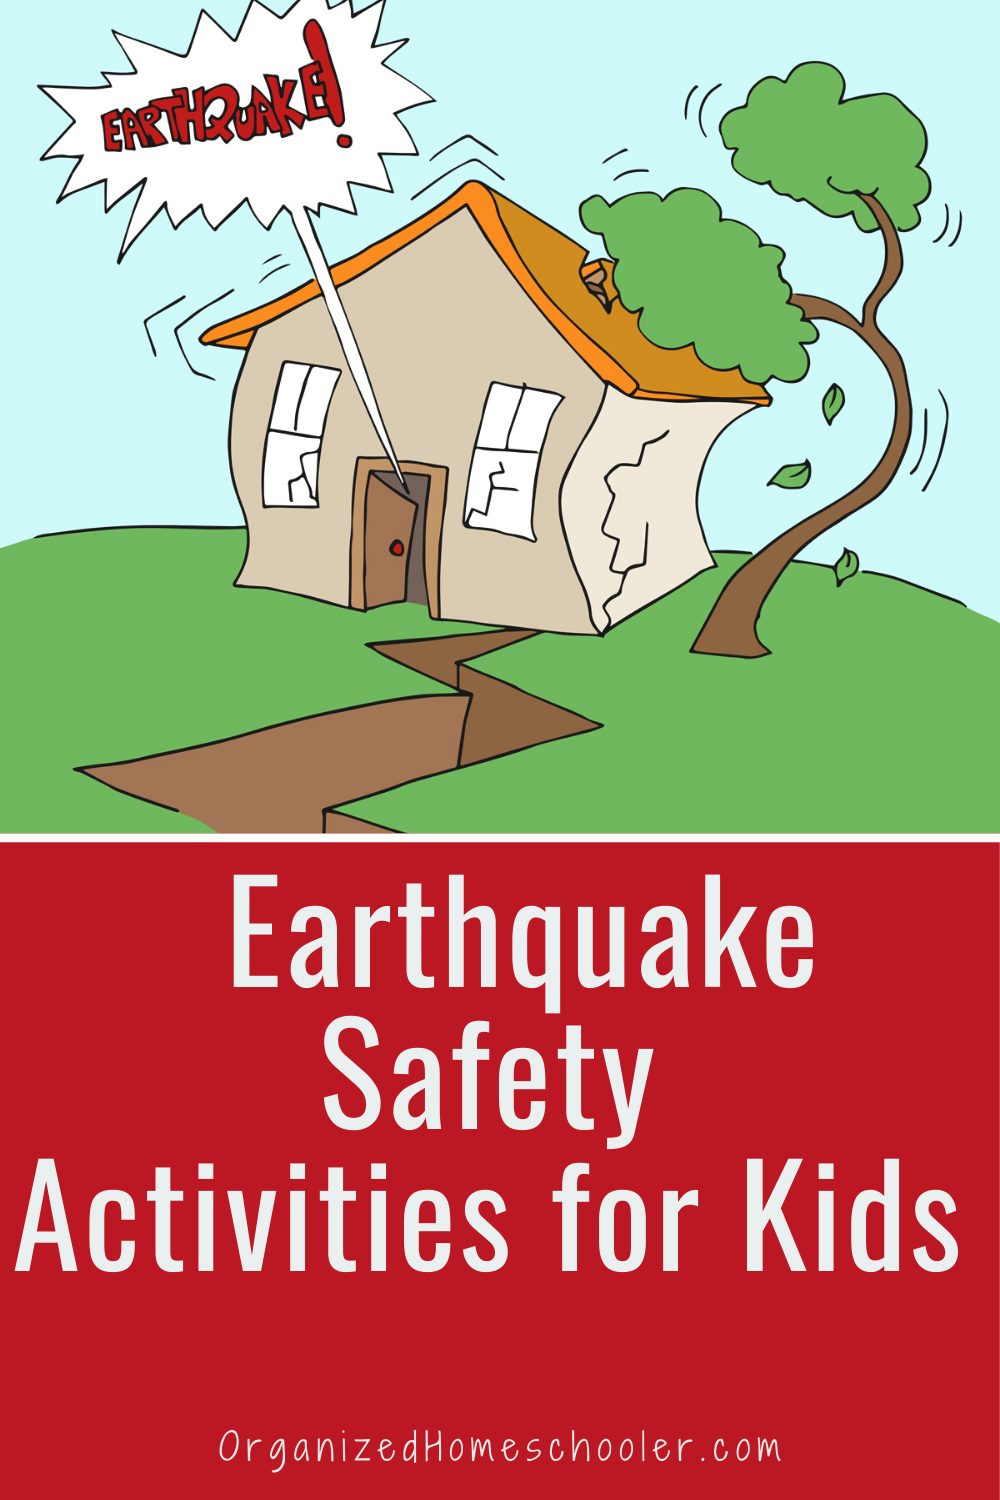 Earthquake Safety for Kids The Organized Homeschooler in